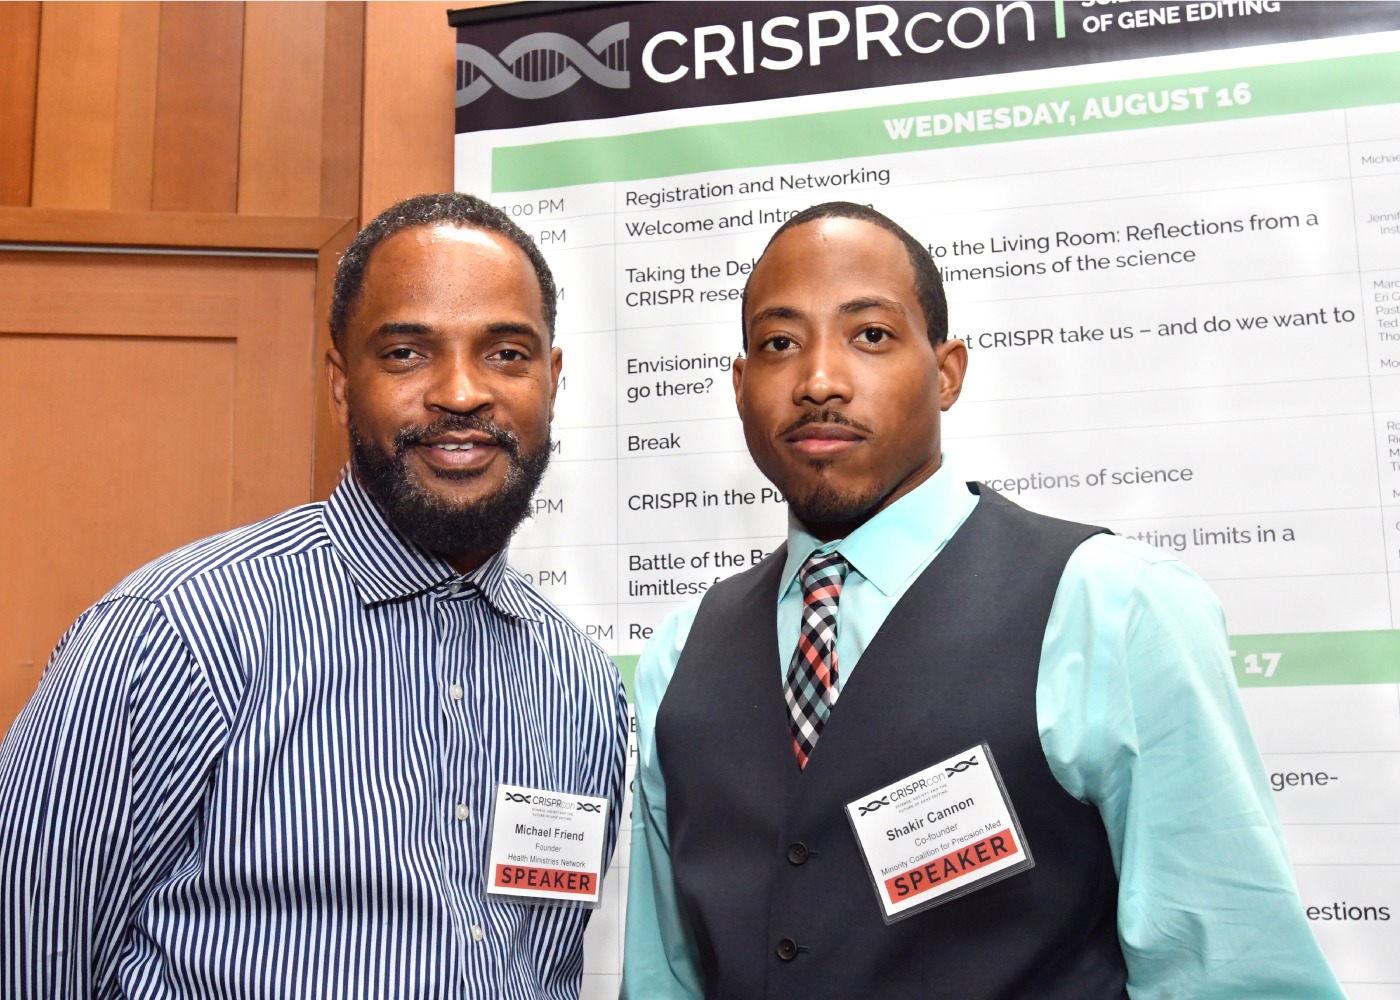 Michael Friend and Shakir Cannon during CRISPRcon